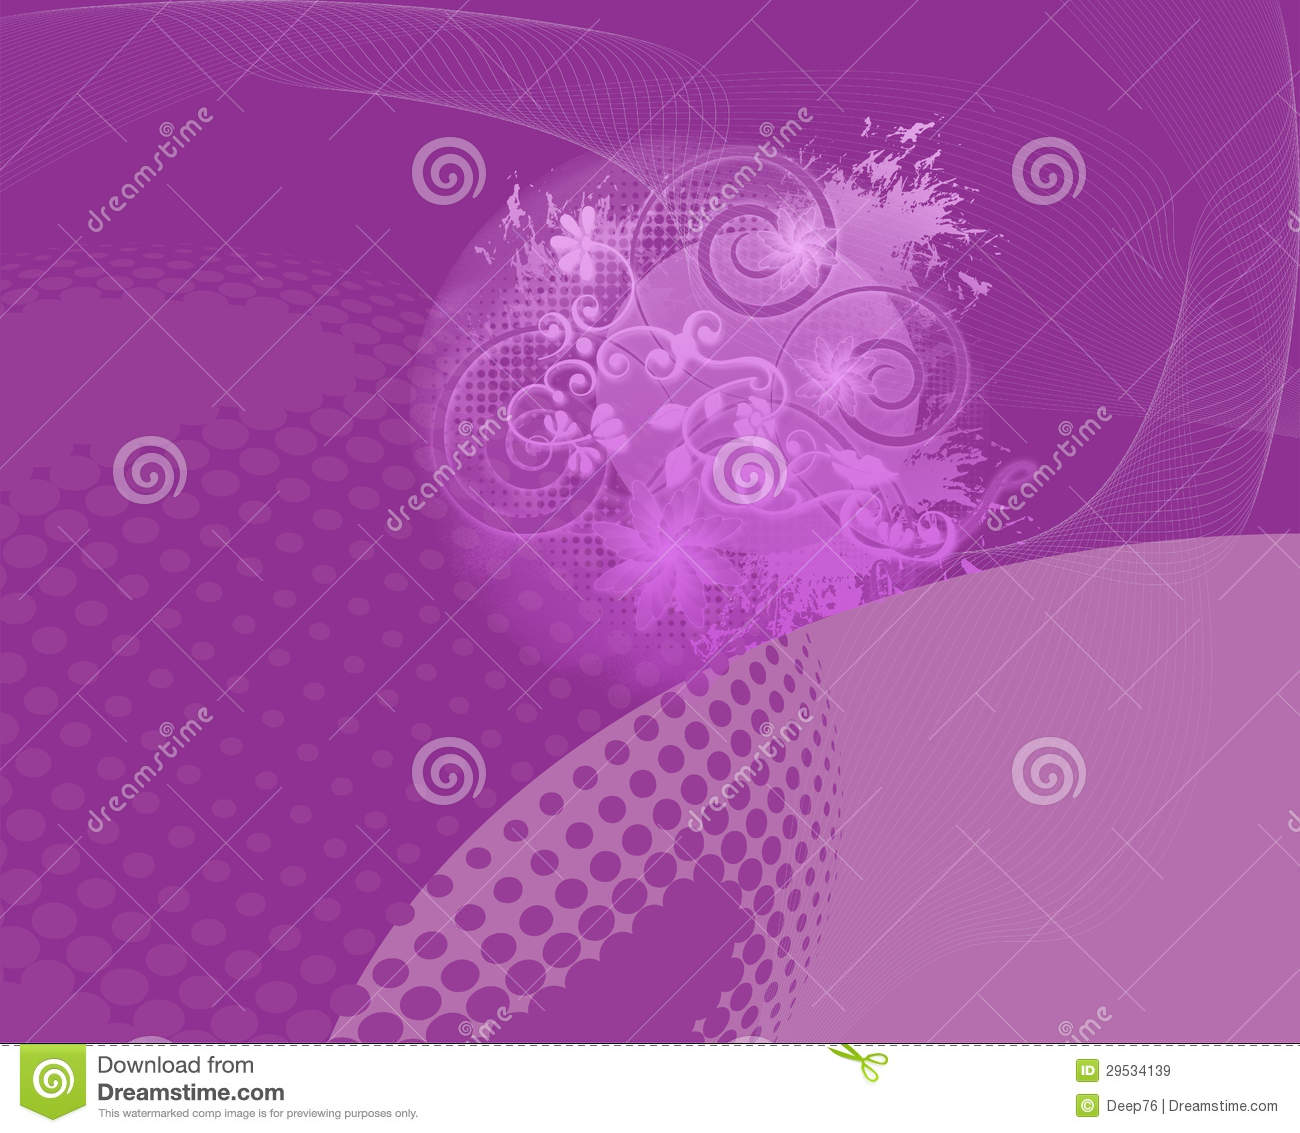 Backround floral abstrato roxo